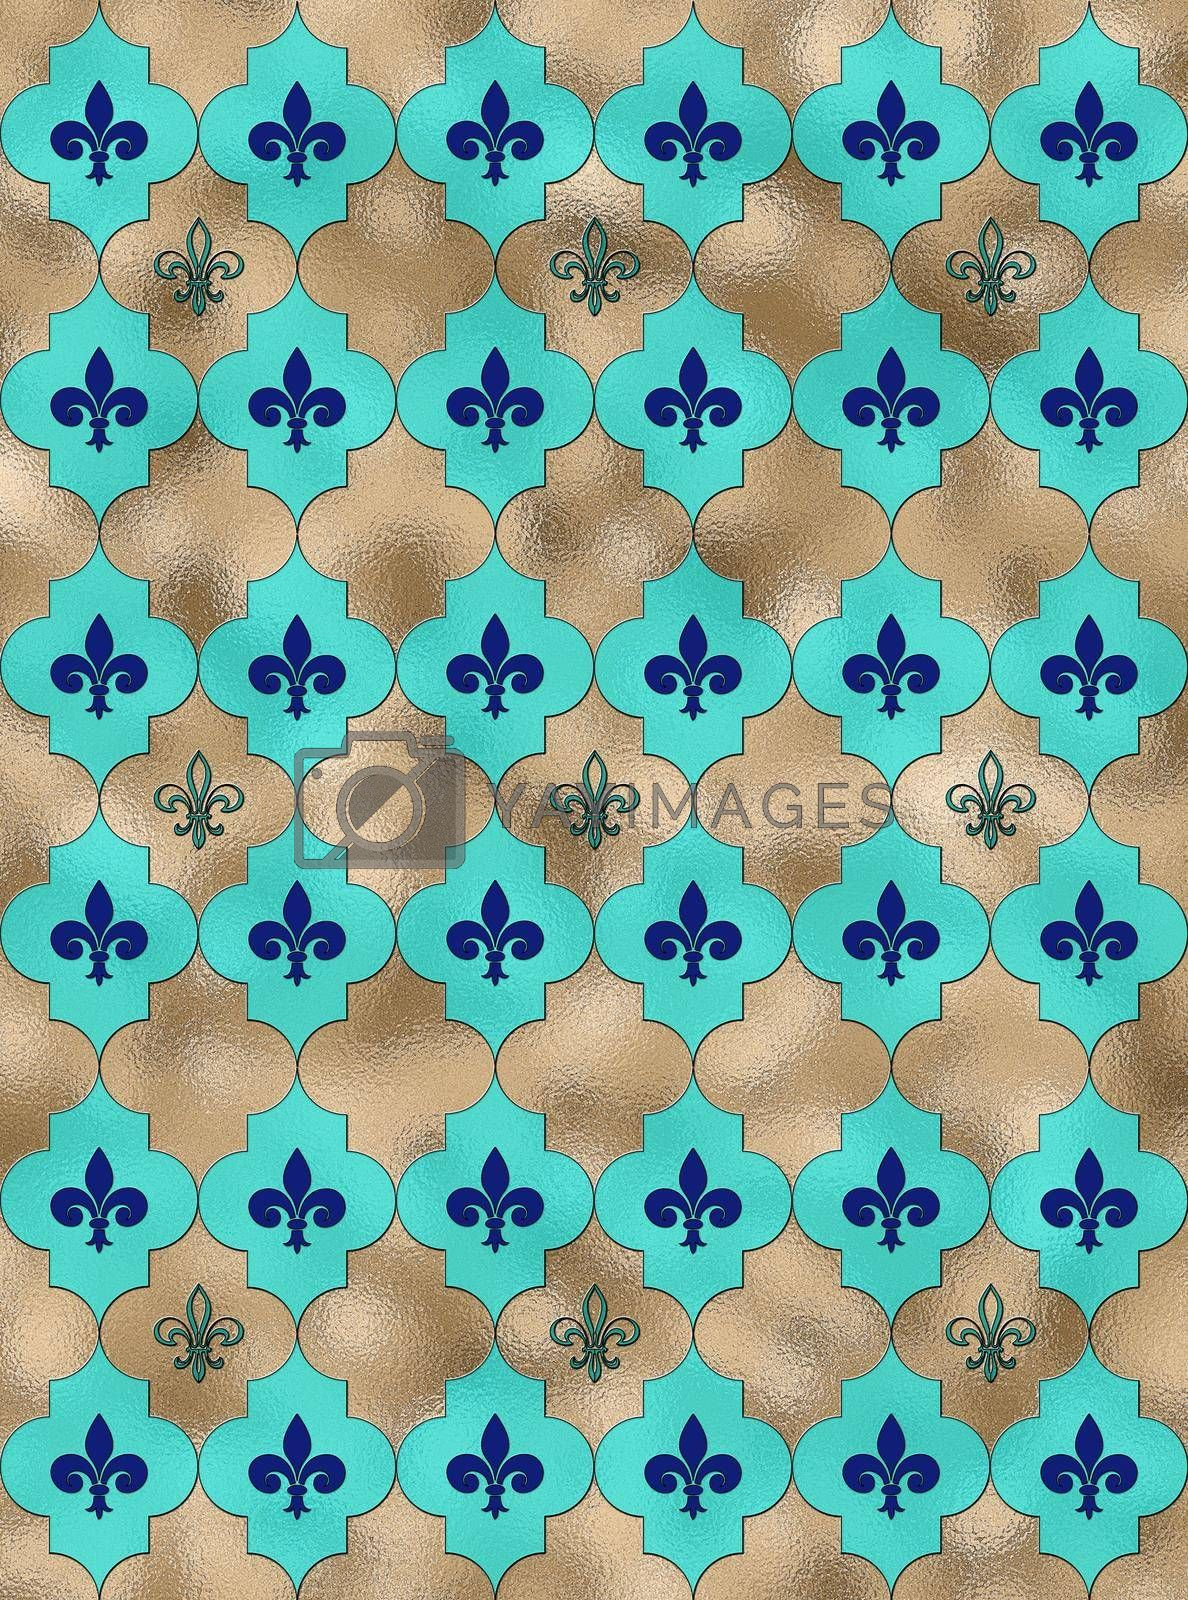 Lily fleur de Lis seamless pattern. Turquoise blue shiny gold pattern with heraldic symbol fleur-de-lis. Modern abstract pattern. 3D Illustration